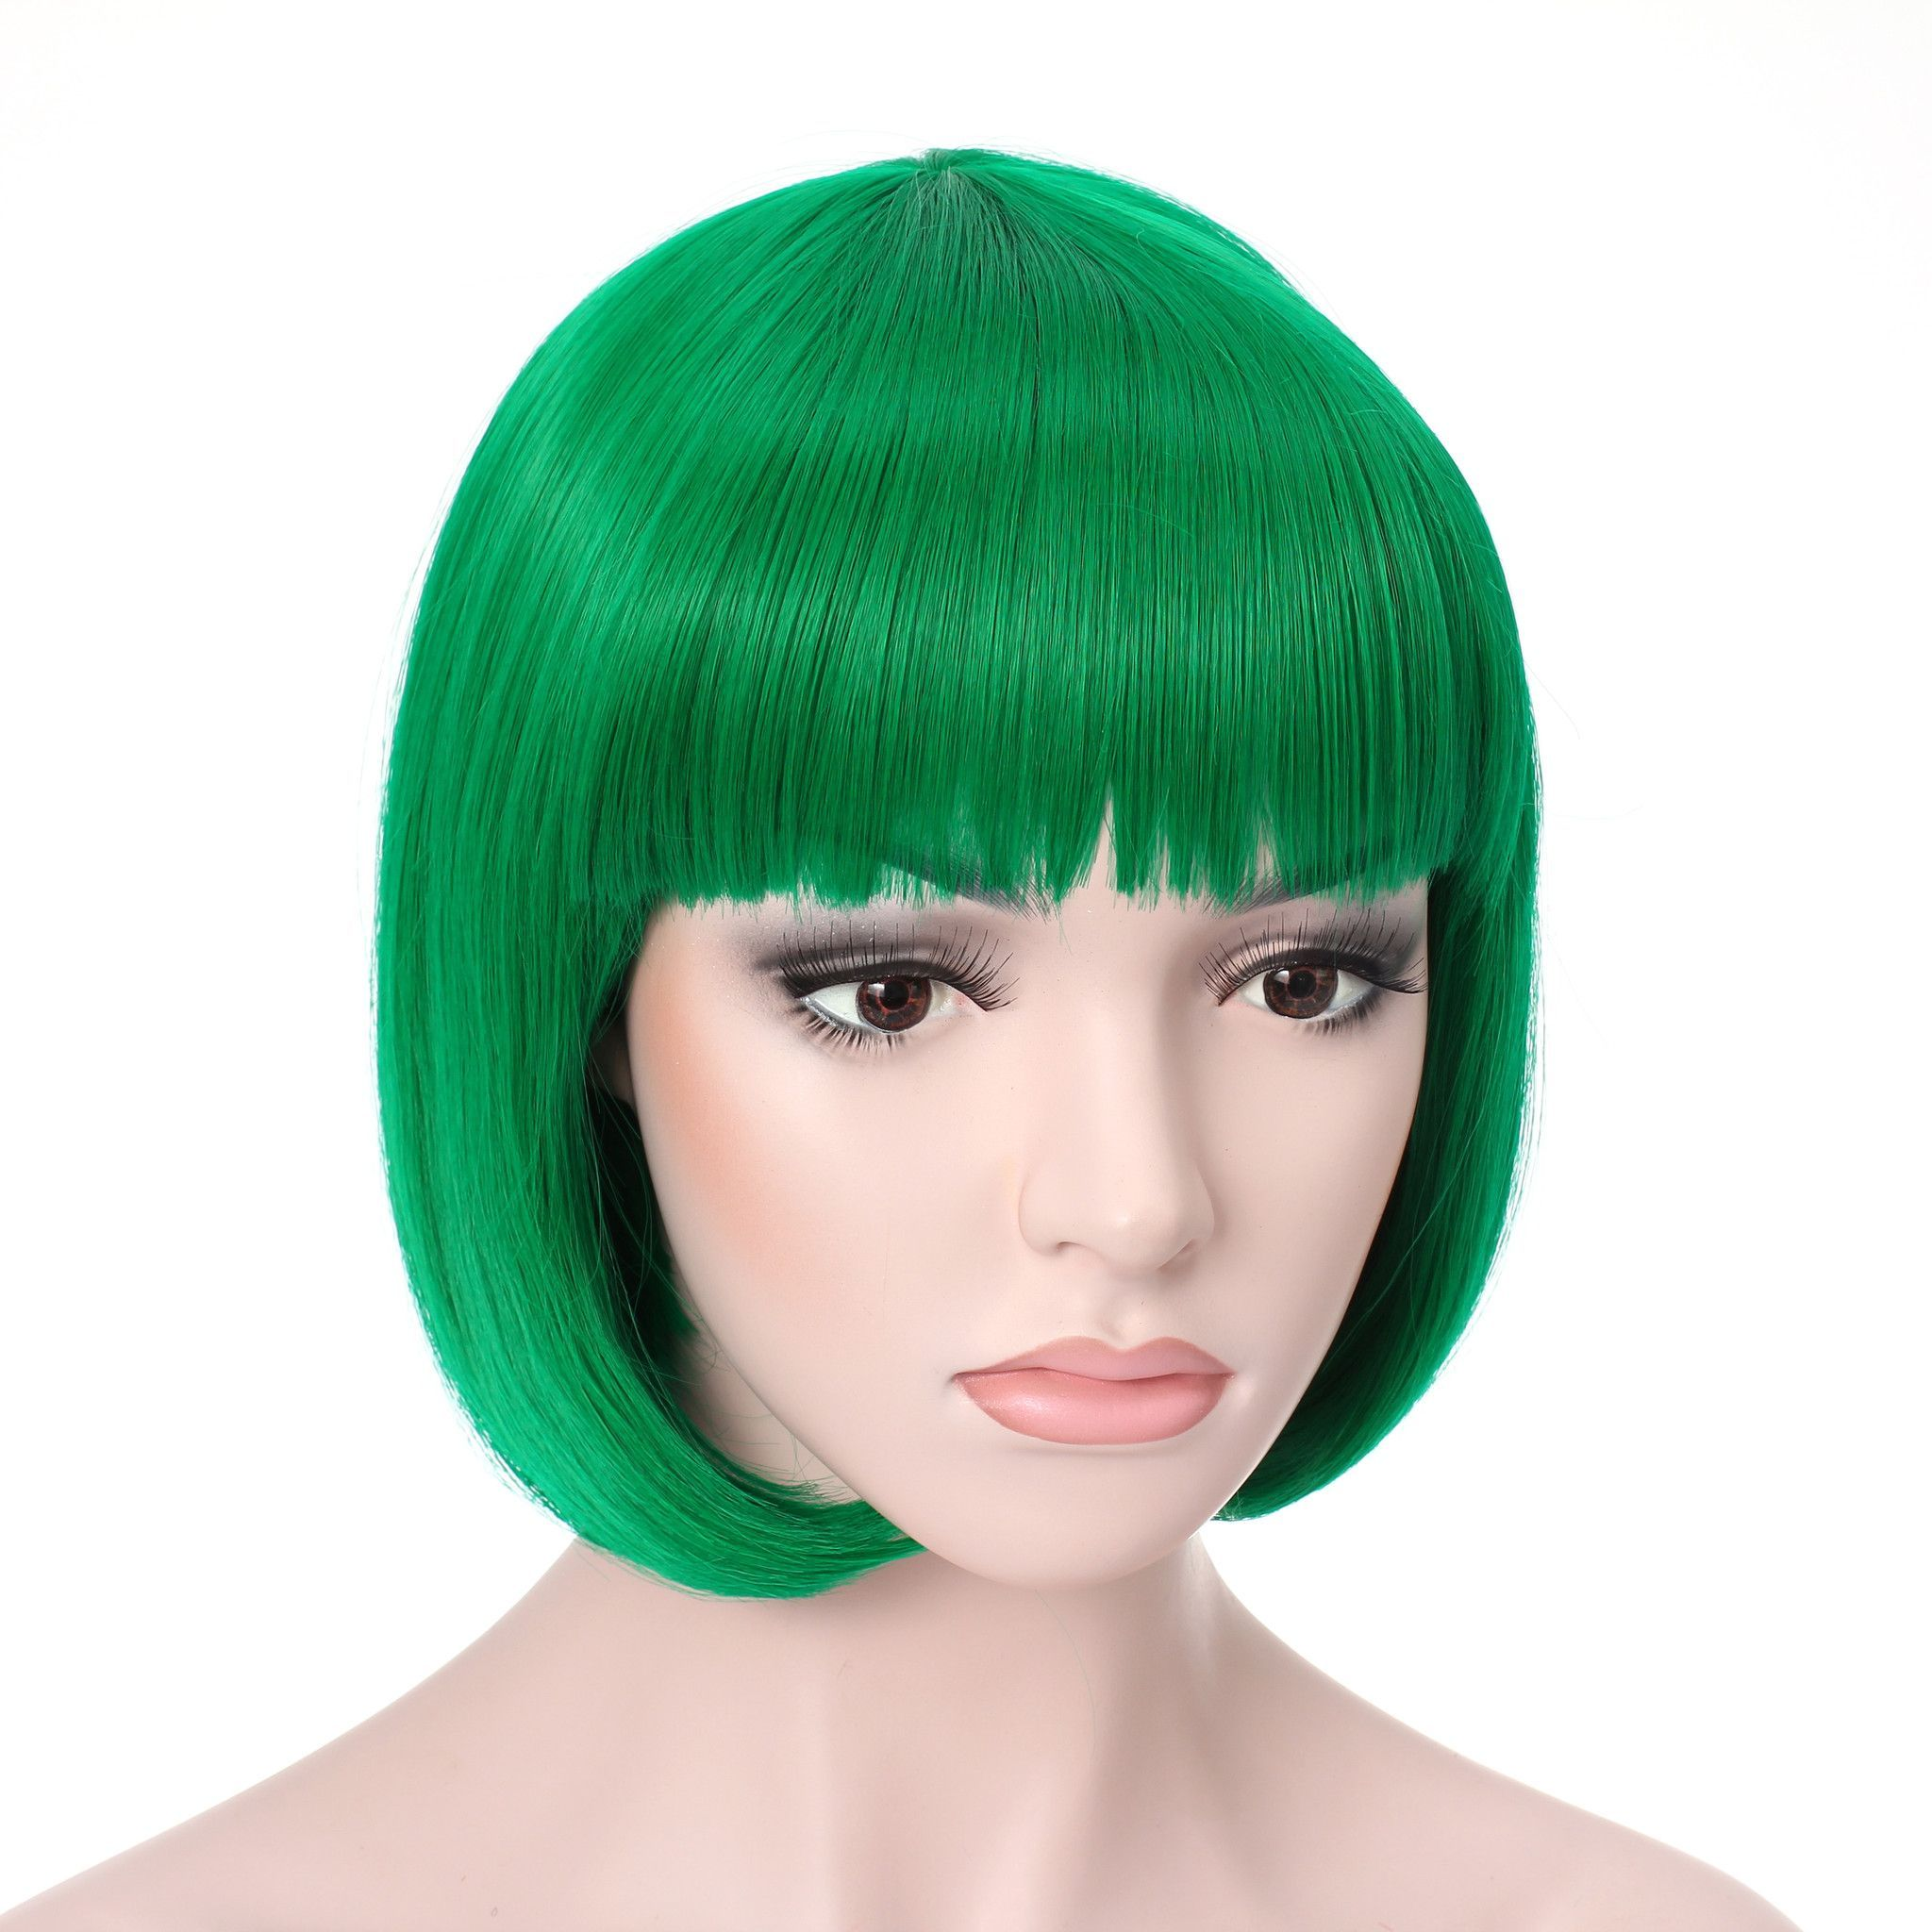 Boy hairstyle wigs model sw this onedor shot bob hair is on an adjustable elastic